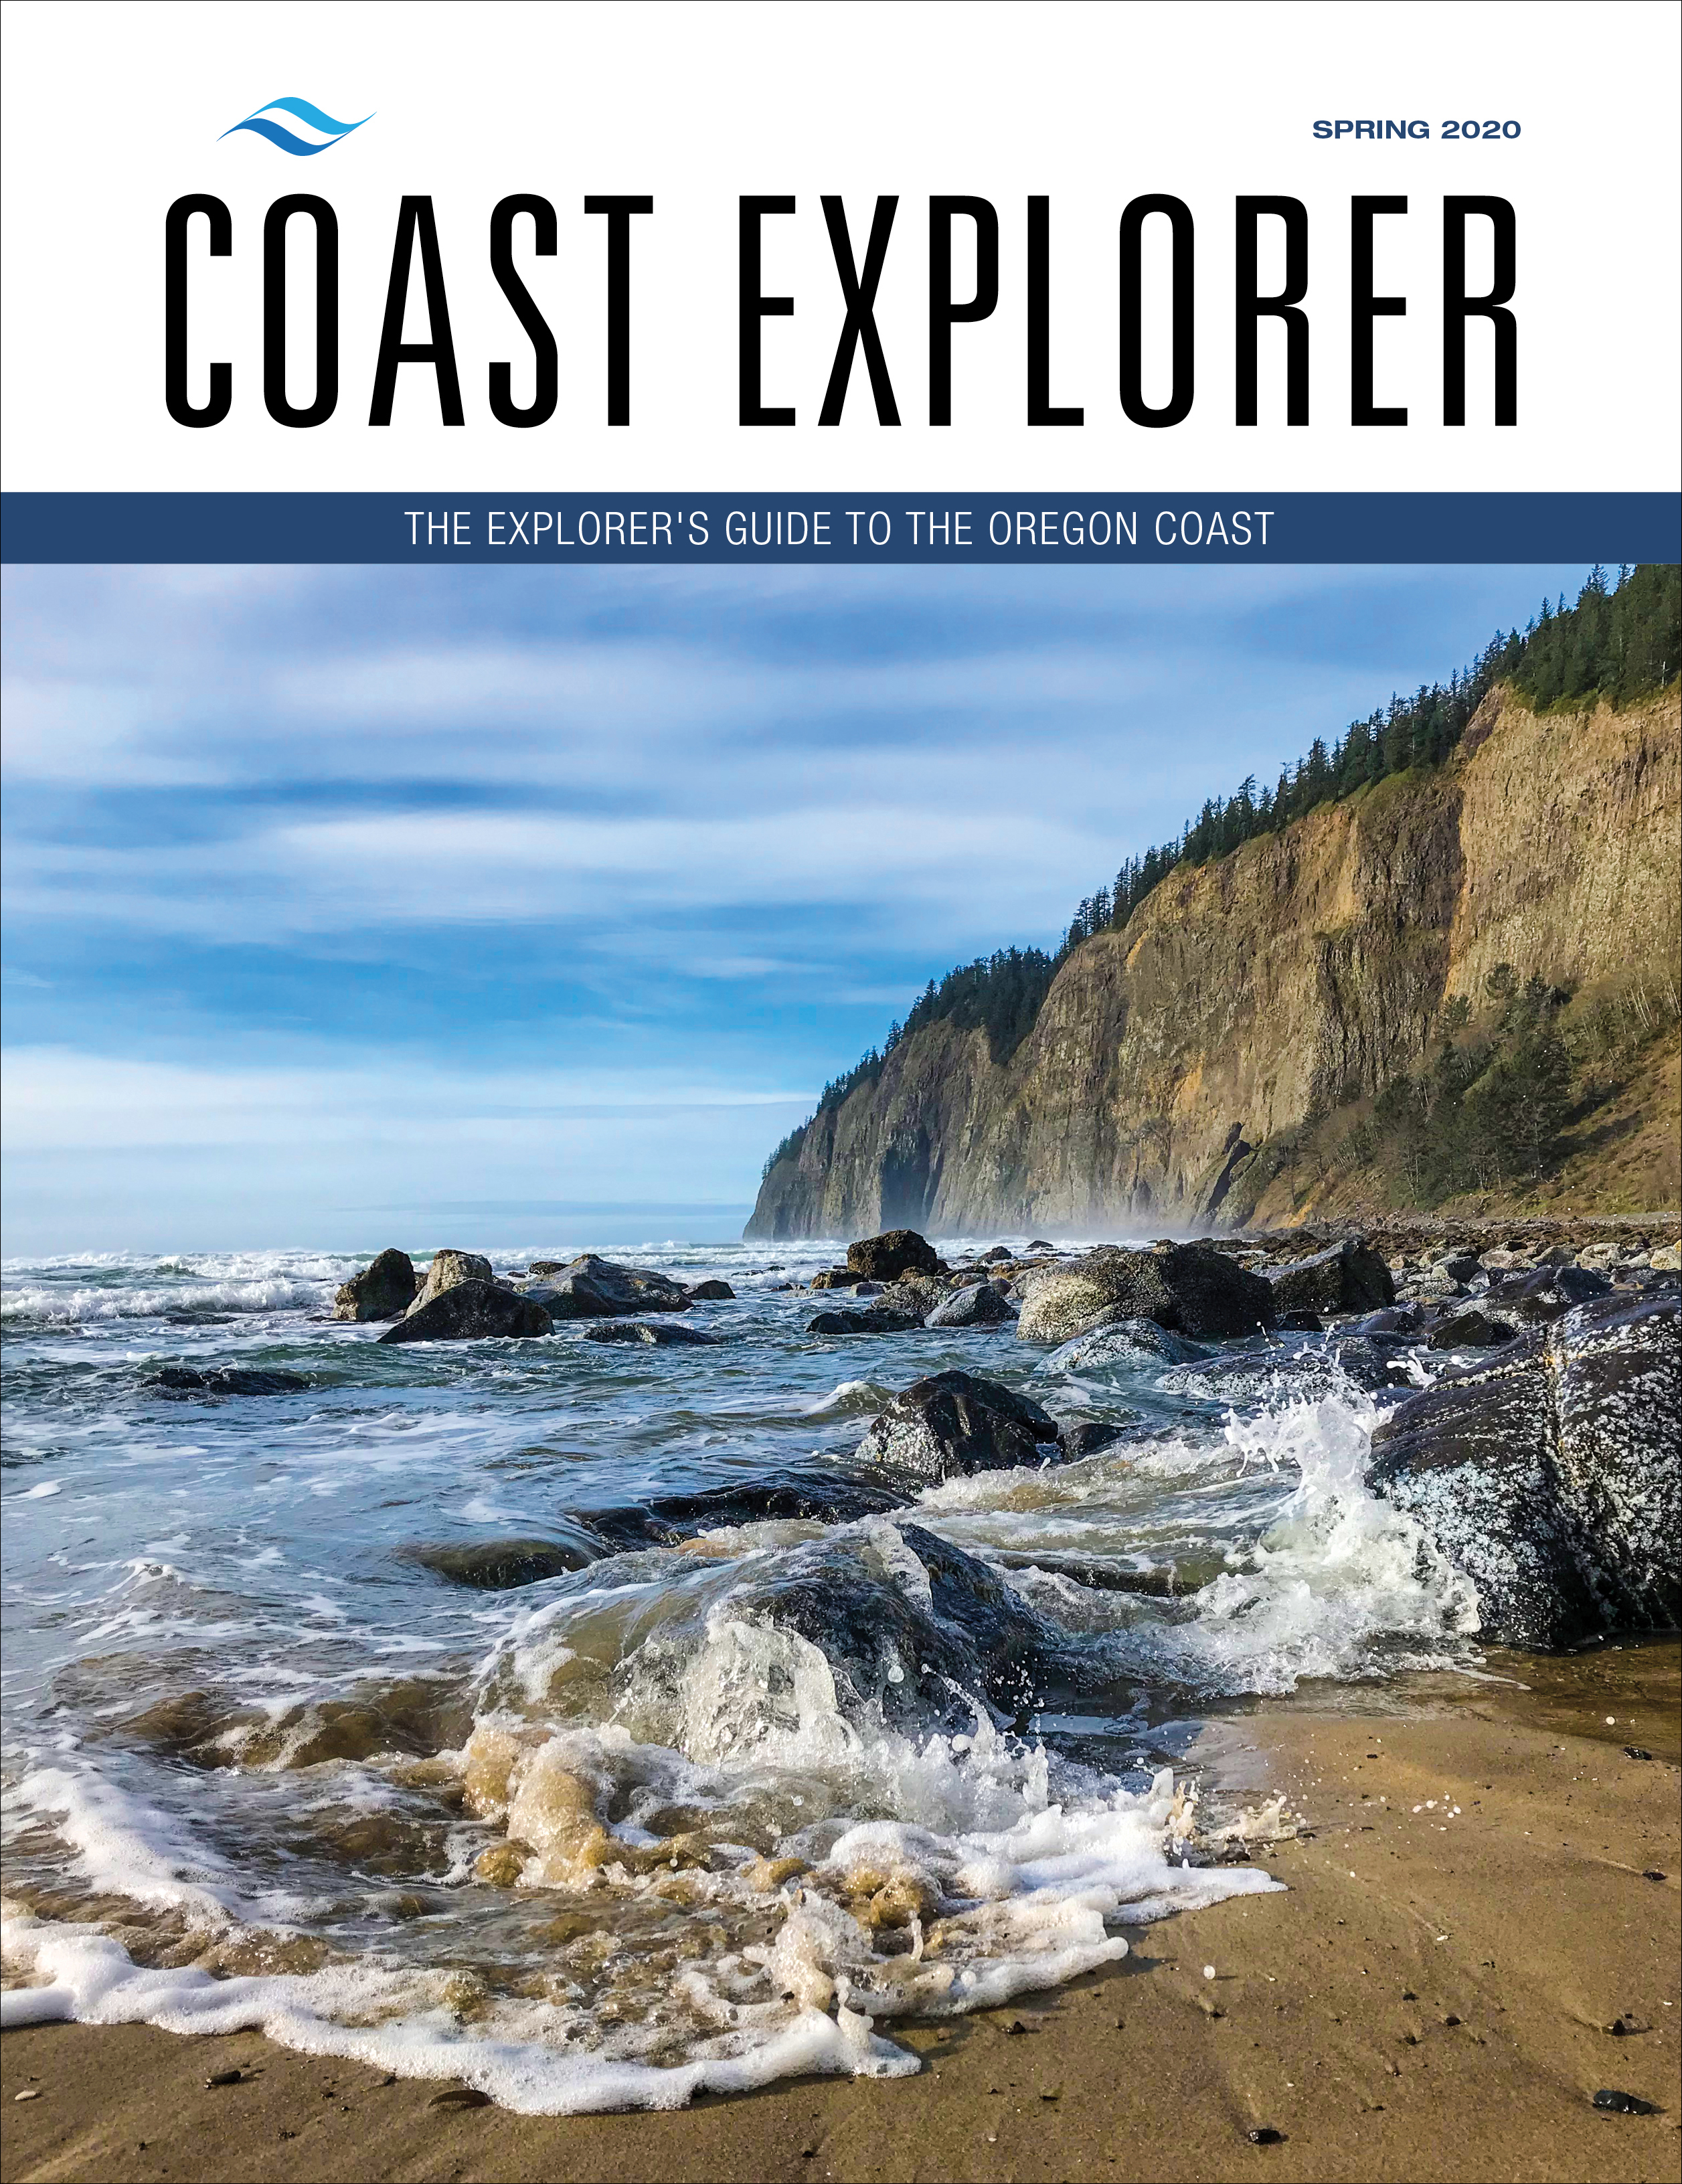 Subscribe to Coast Explorer